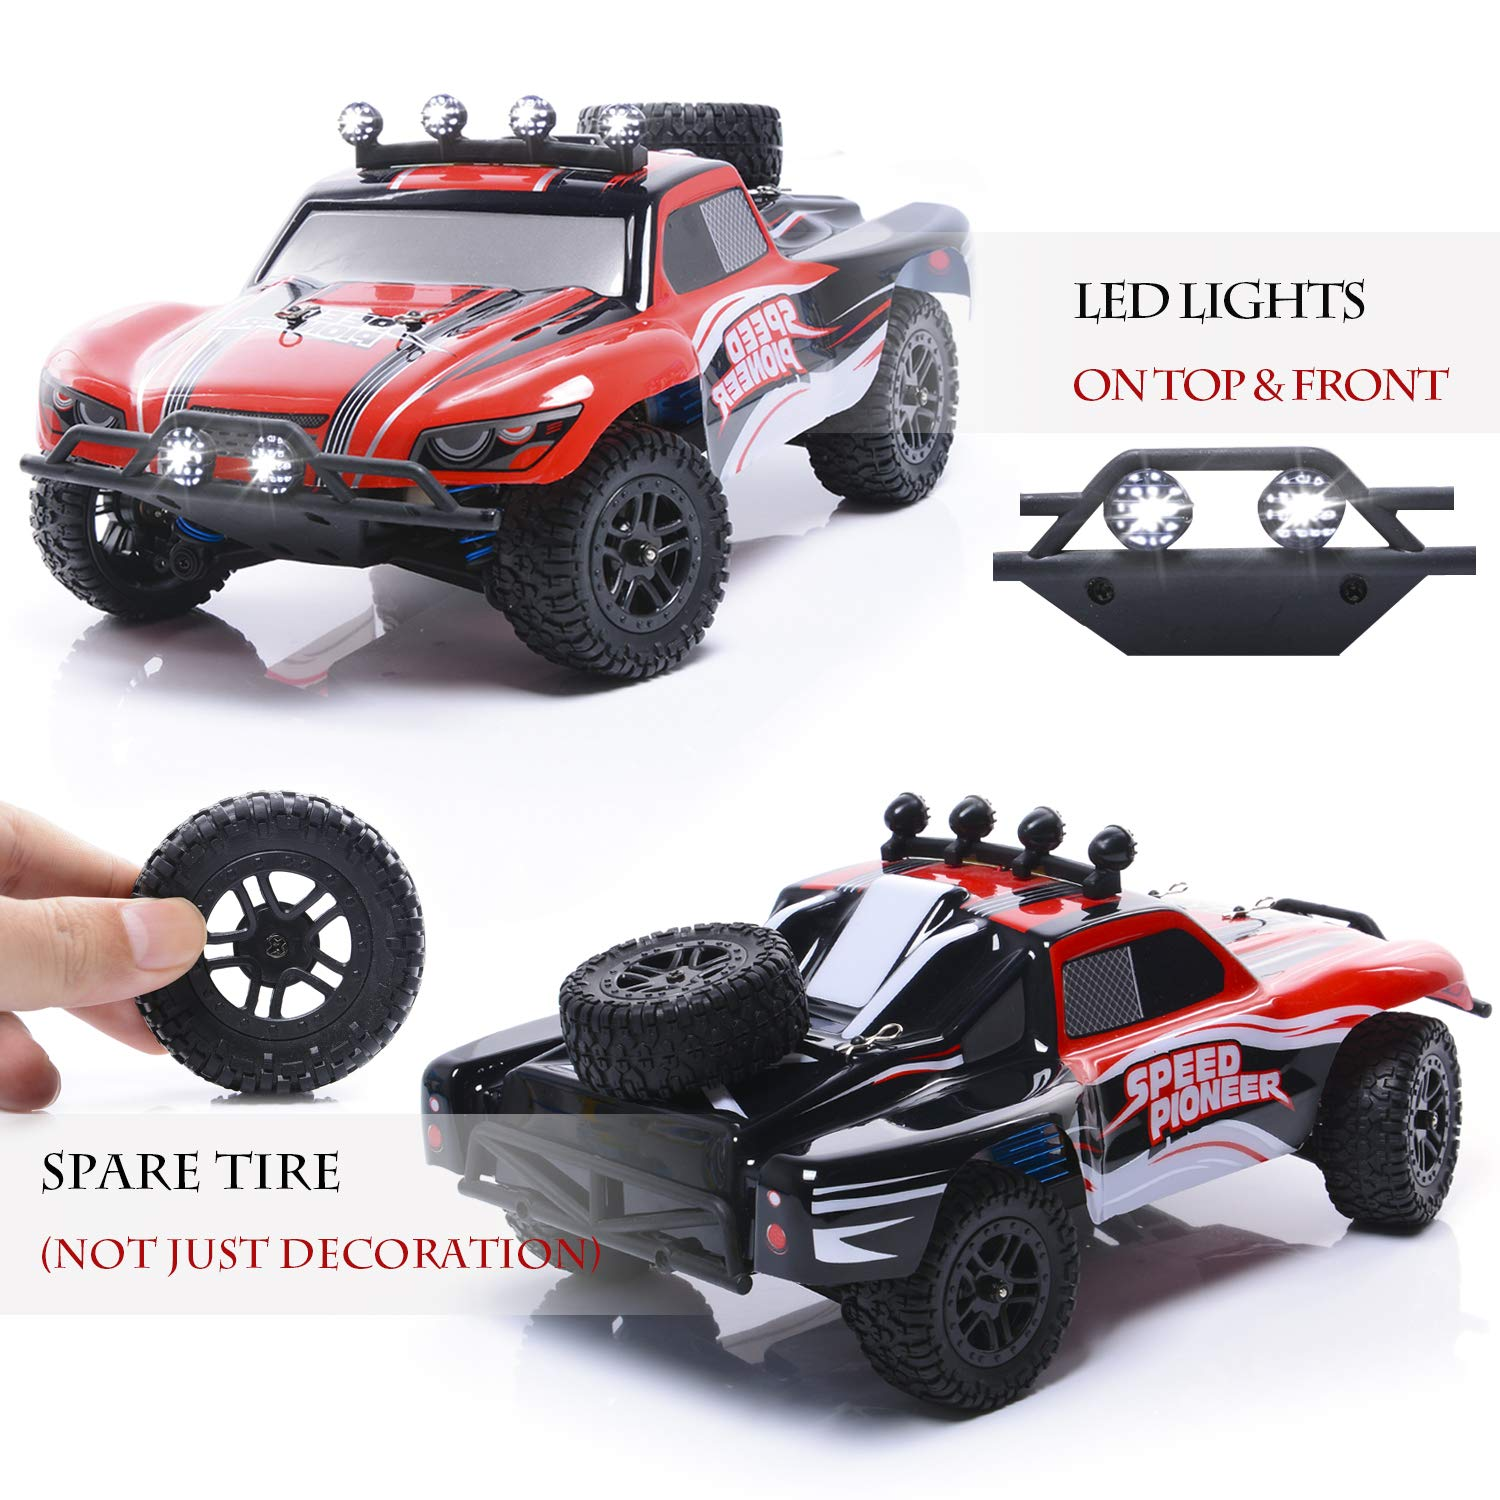 EXERCISE N PLAY RC Car, Remote Control Car, Terrain RC Cars, Electric Remote Control Off Road Monster Truck, 1:18 Scale 2.4Ghz Radio 4WD Fast 30+ MPH RC Car, with LED Ligh, 2 Rechargeable Batteries by EXERCISE N PLAY (Image #3)